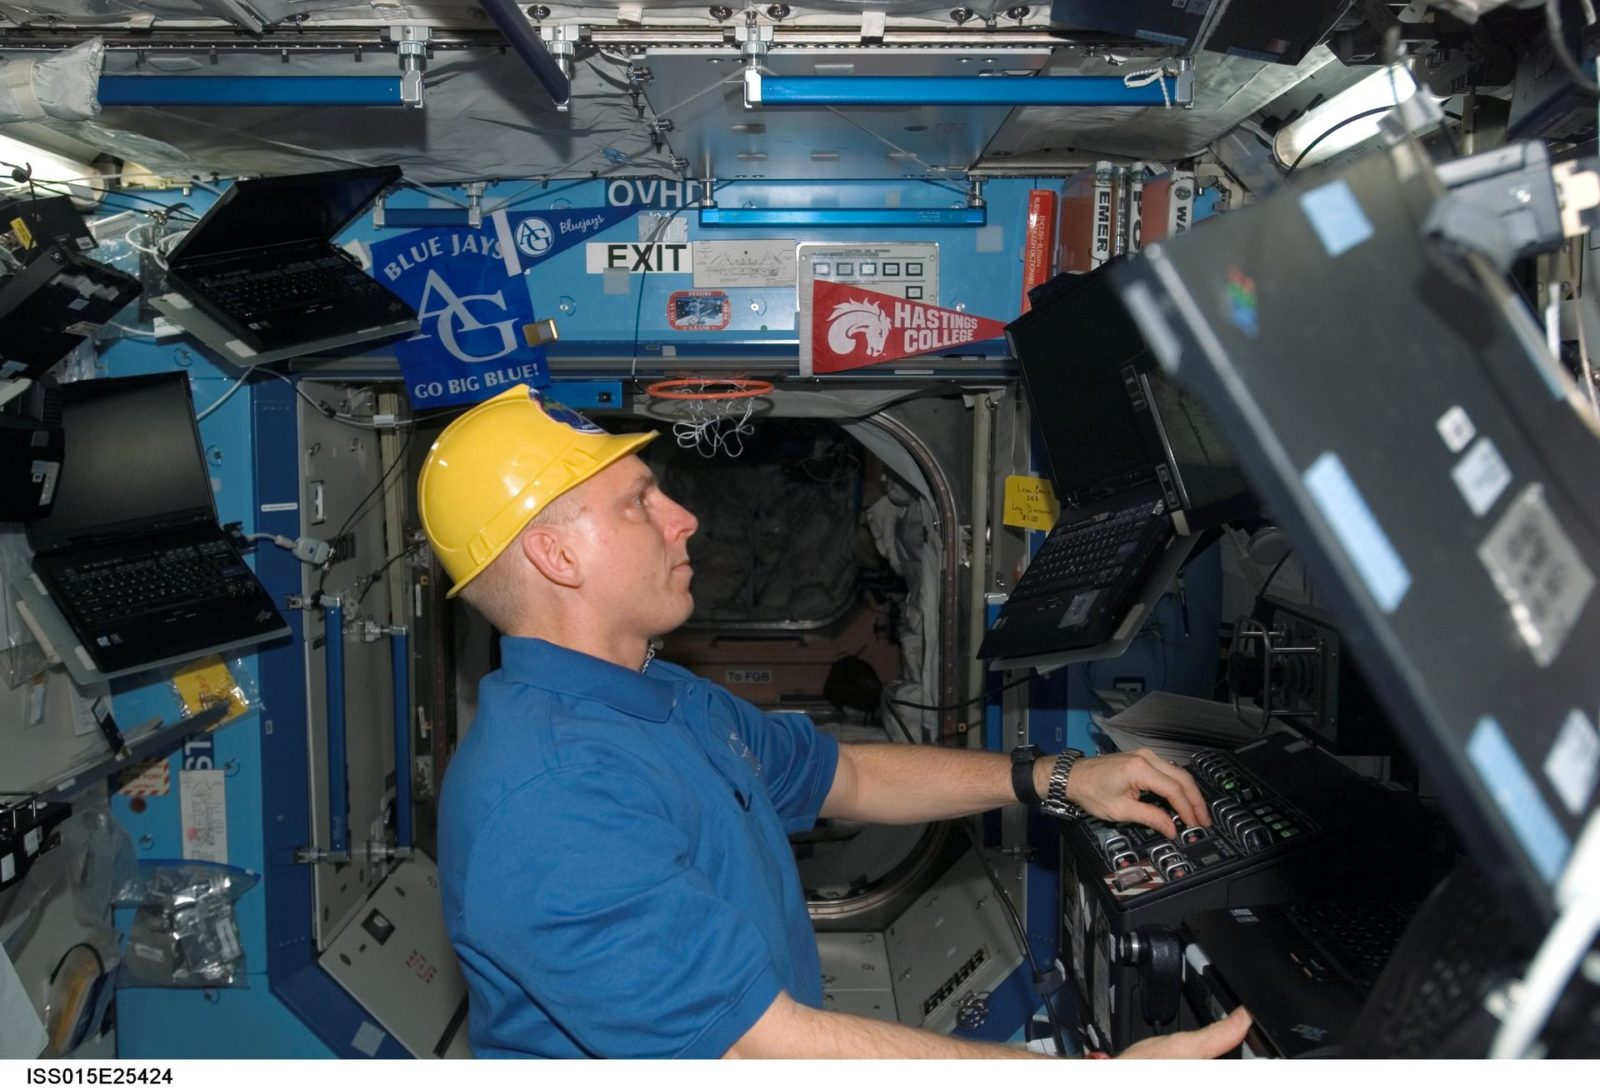 View of Anderson working in the US Lab during Expedition 15